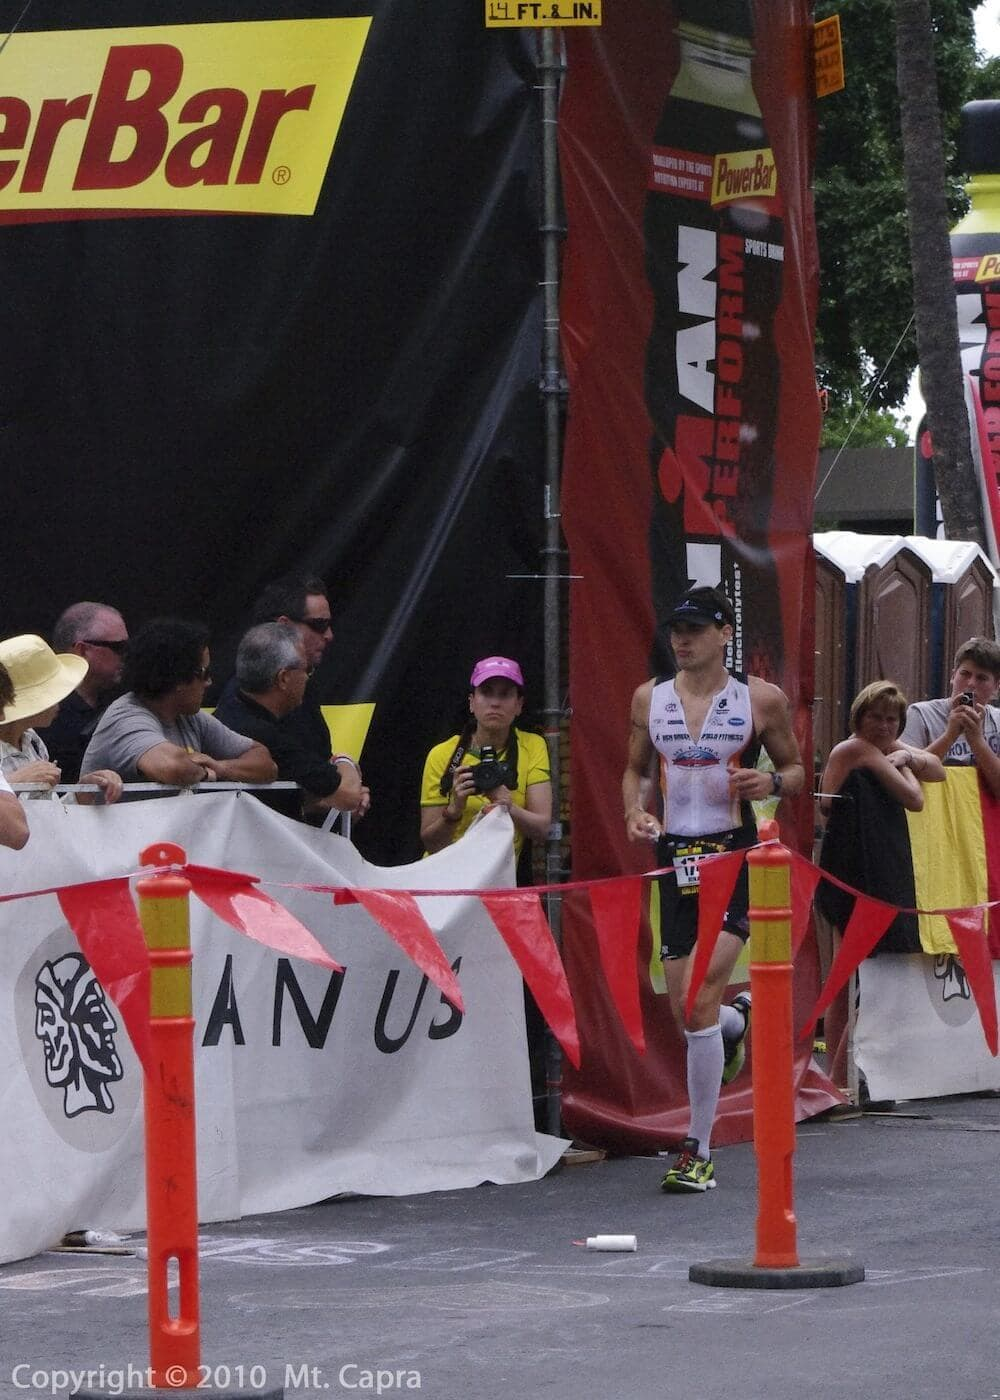 Kona, Hawaii - Ironman World Championship - 1st leg of Marathon